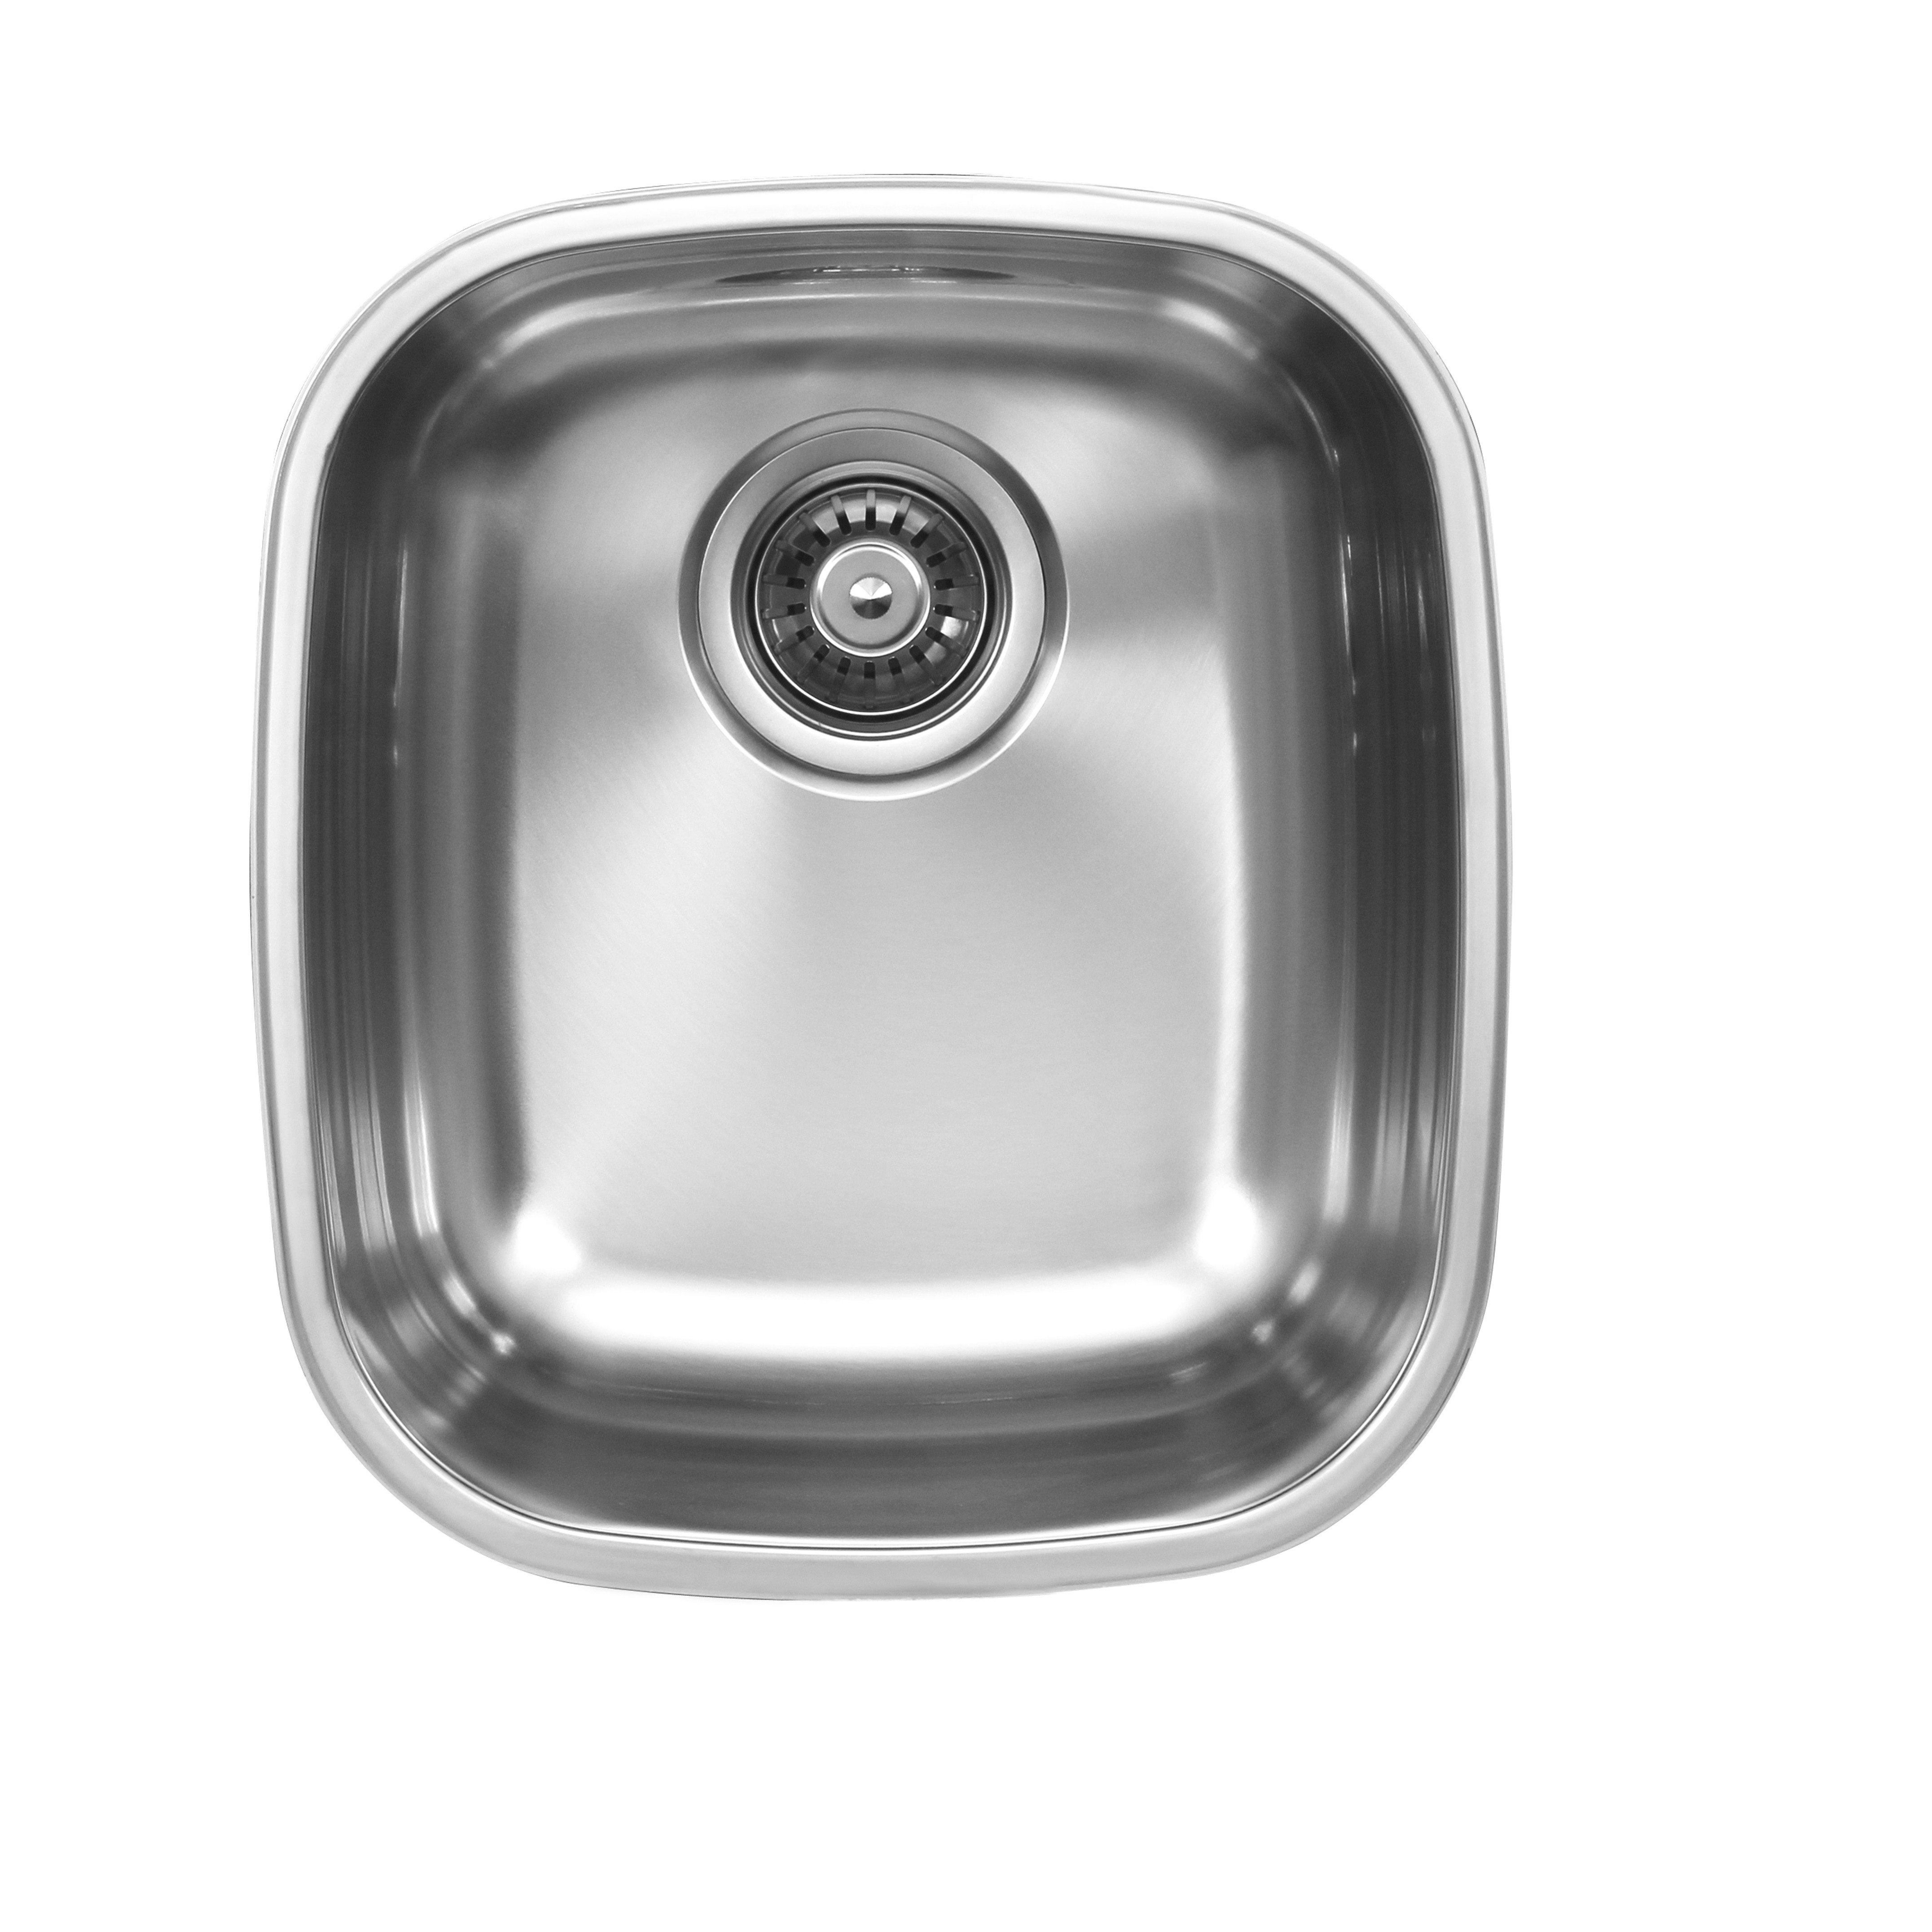 UKINOX D345.10GCRB UNDERMOUNT SINGLE BOWL STAINLESS STEEL KITCHEN SINK WITH BOTTOM GRID, CUTTING BOARD, AND RINSING BASKET